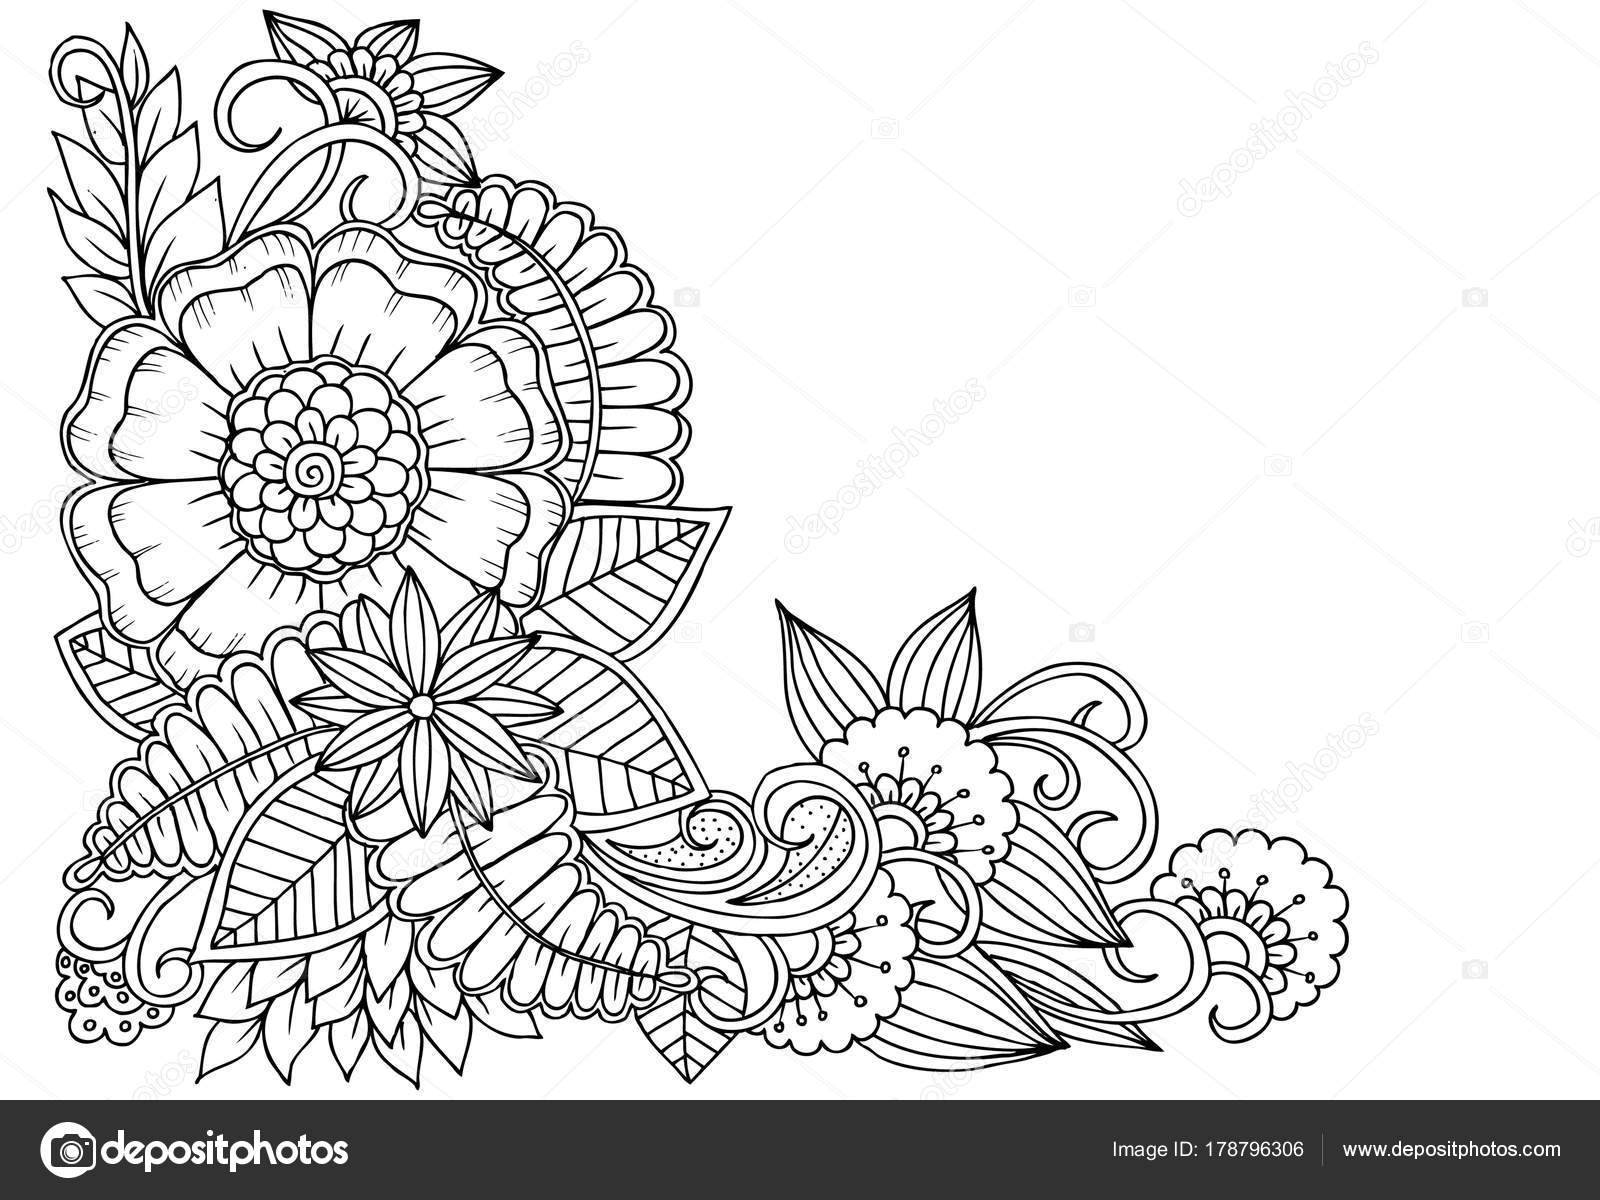 flower corner design drawing flowers healthy